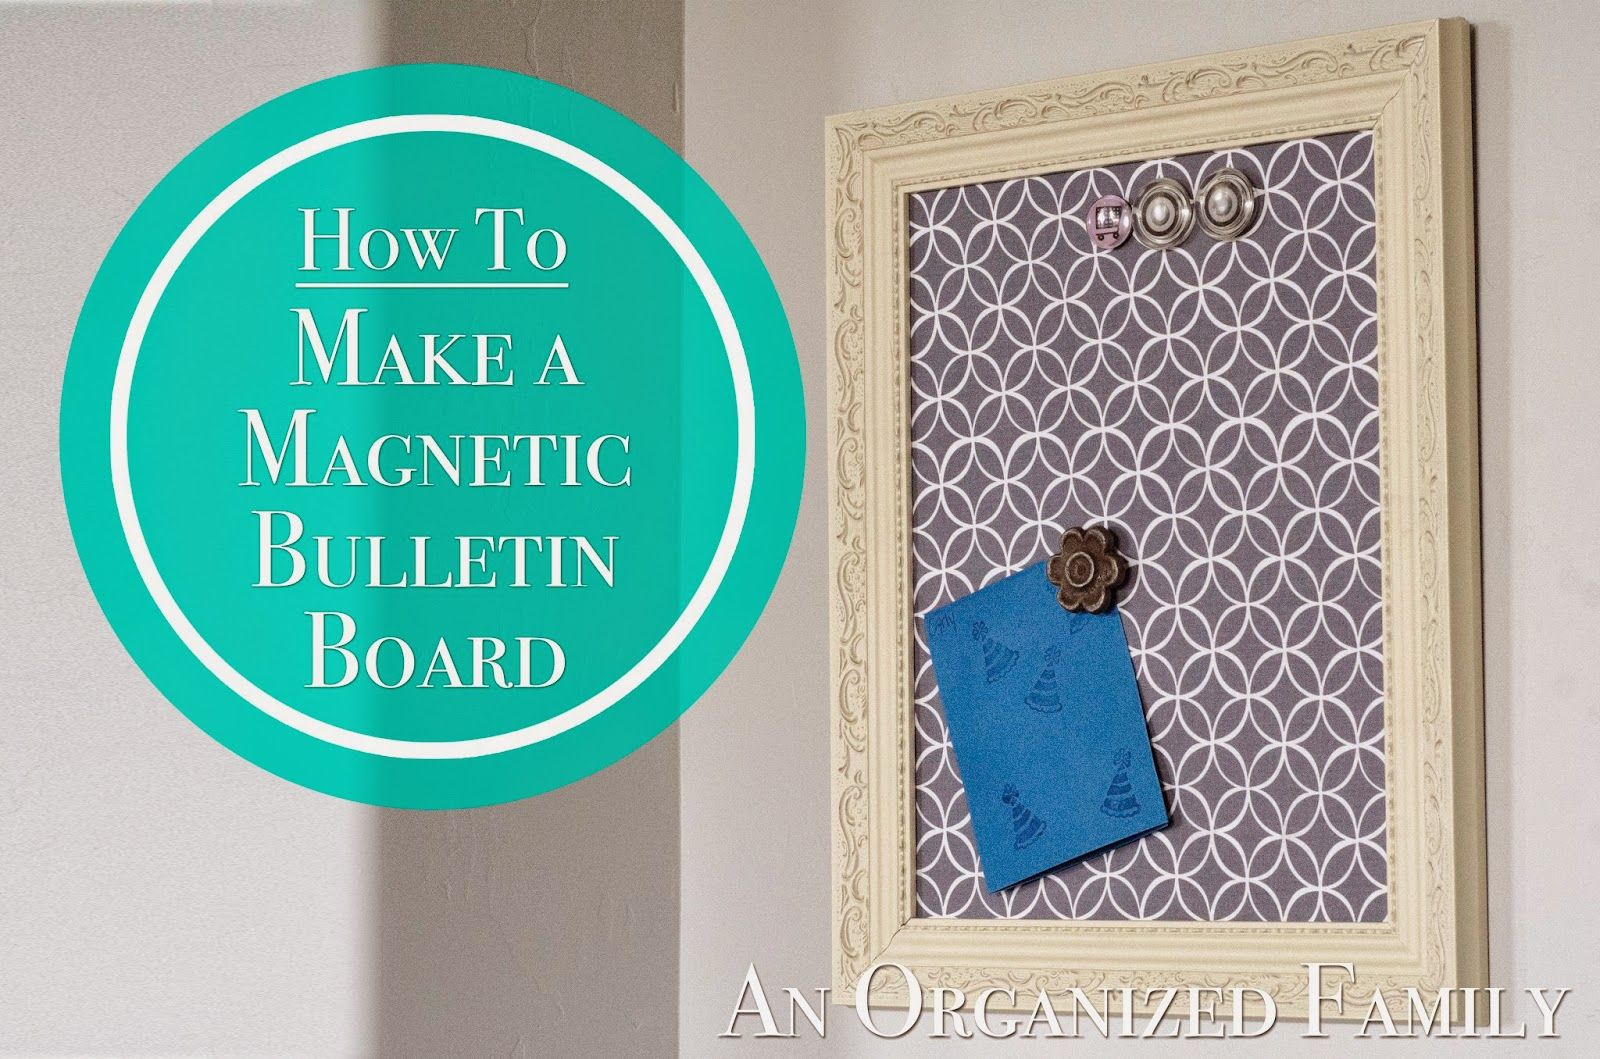 How To Make A Magnetic Bulletin Board Magnetic Bulletin Boards Bulletin Boards Bulletin